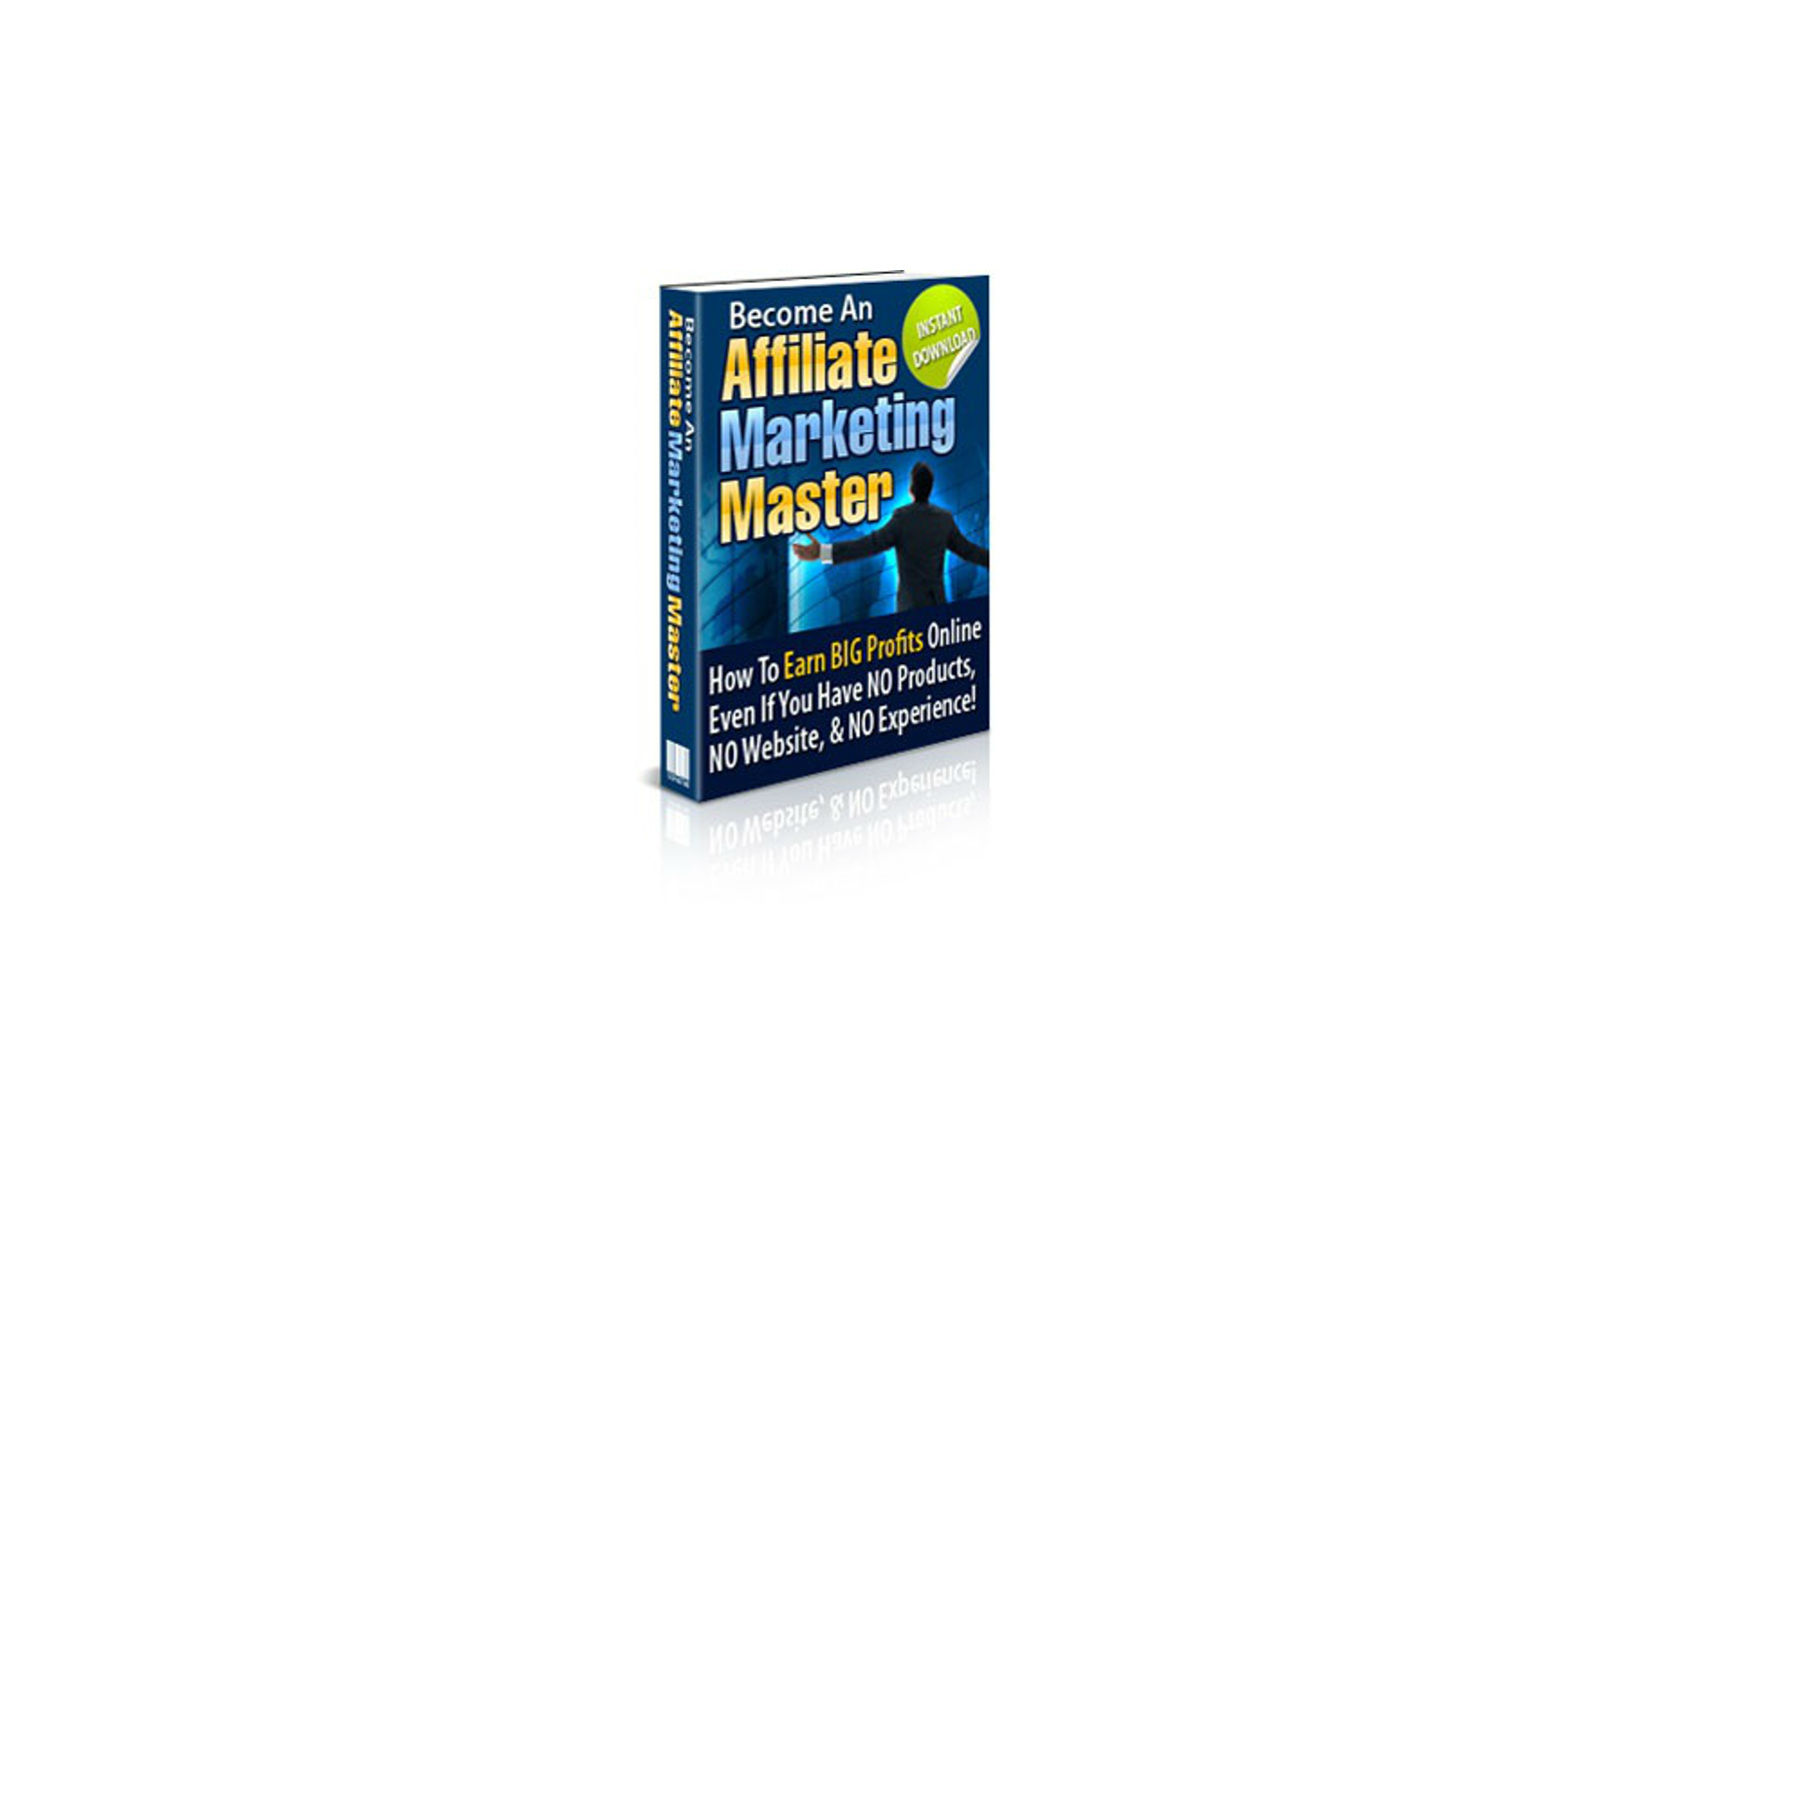 give you a Ebook Become an Affiliate Marketing Master resell rights!